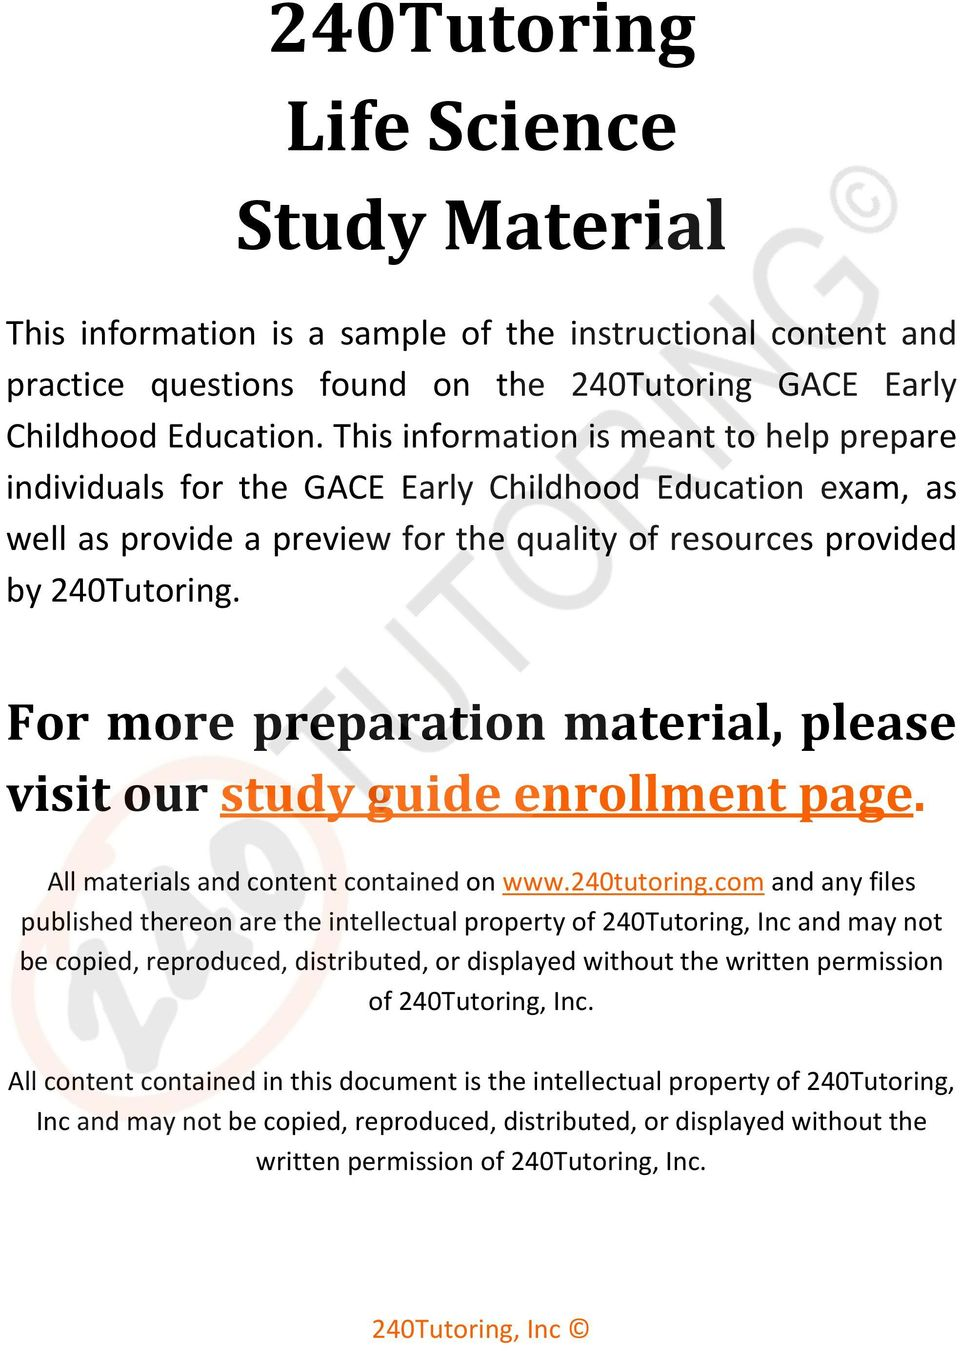 For more preparation material, please visit our study guide enrollment page. All materials and content contained on www.240tutoring.